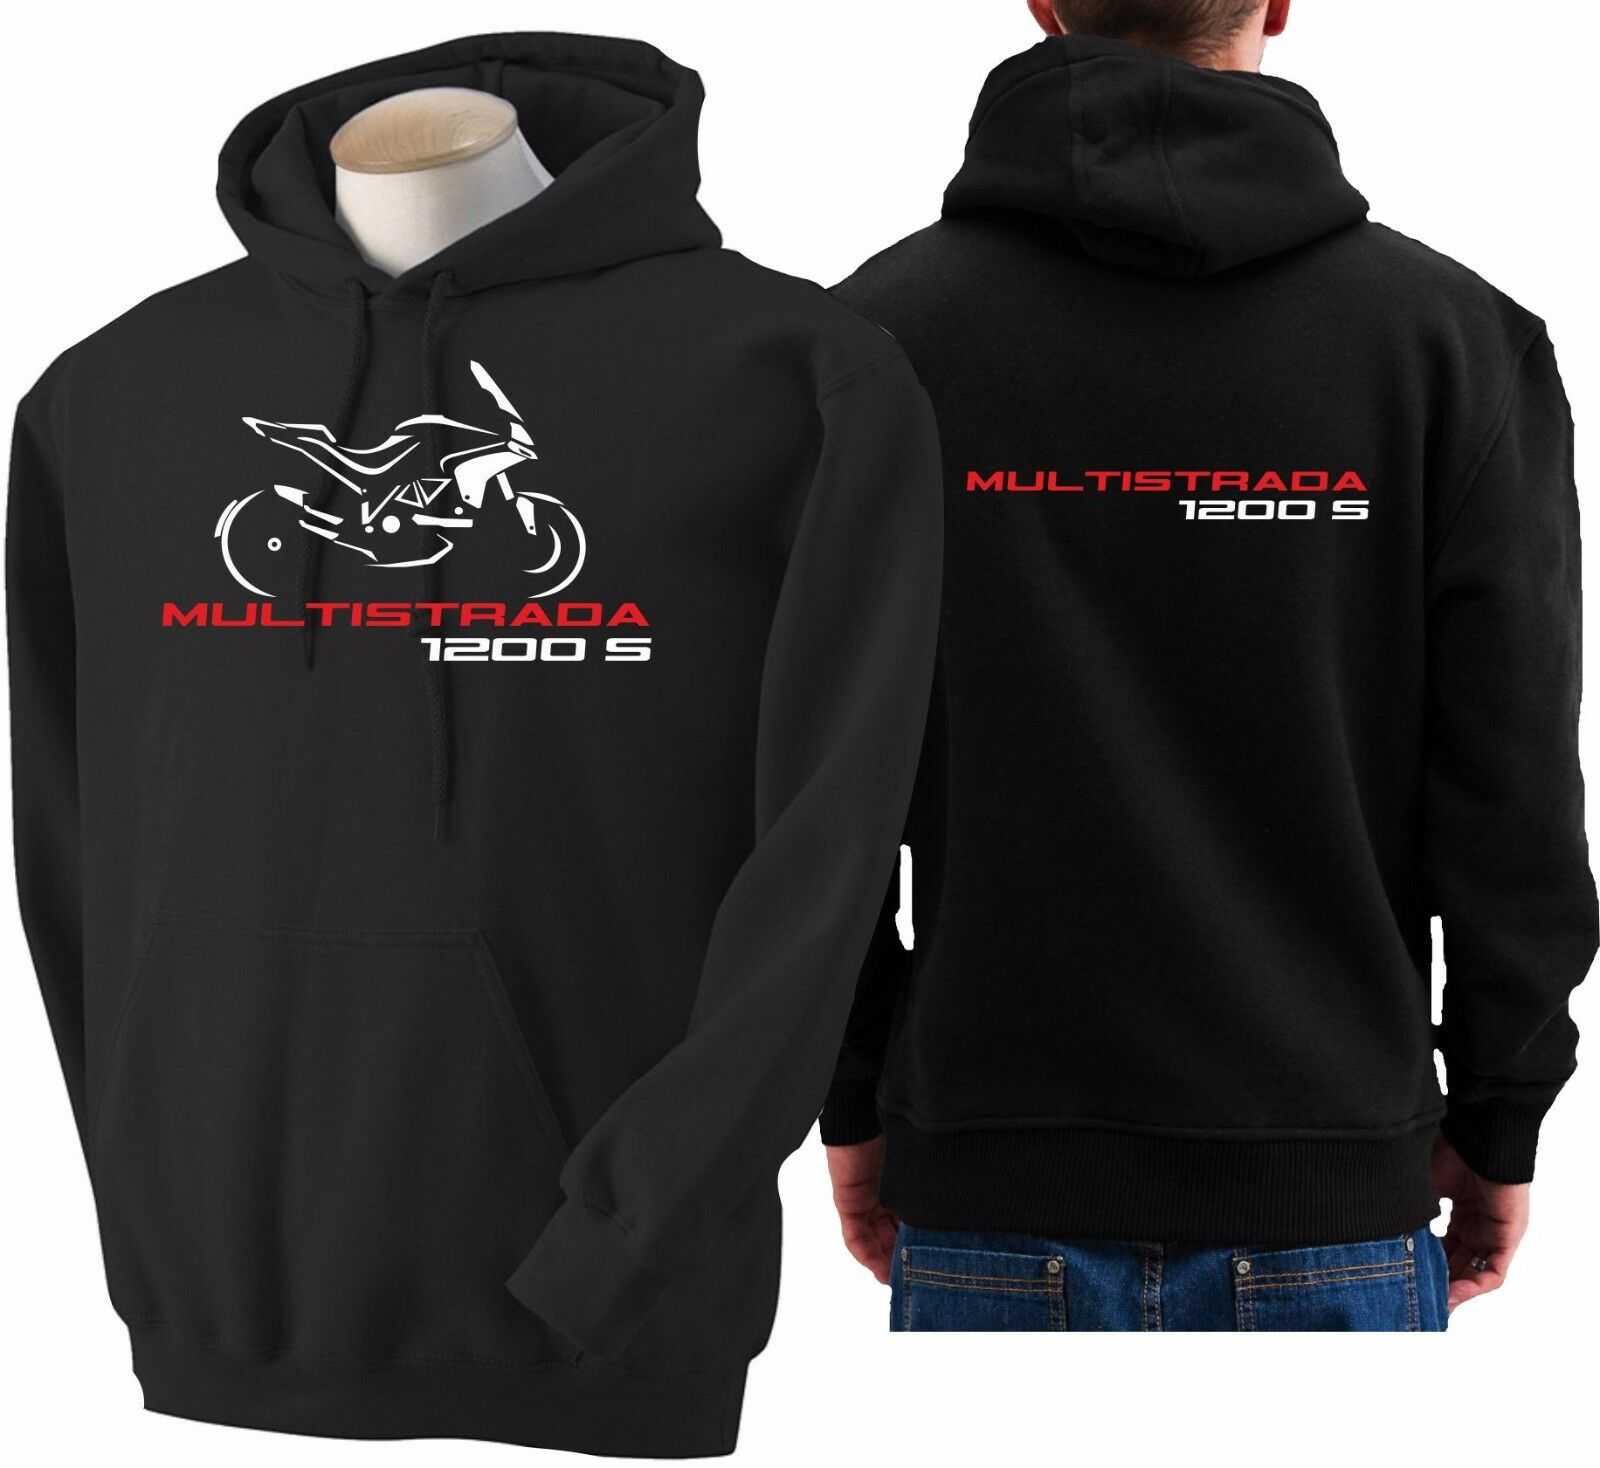 Hoodie for bike DUCATI Multistrada 1200s sweatshirt hoody Sudadera moto sweater